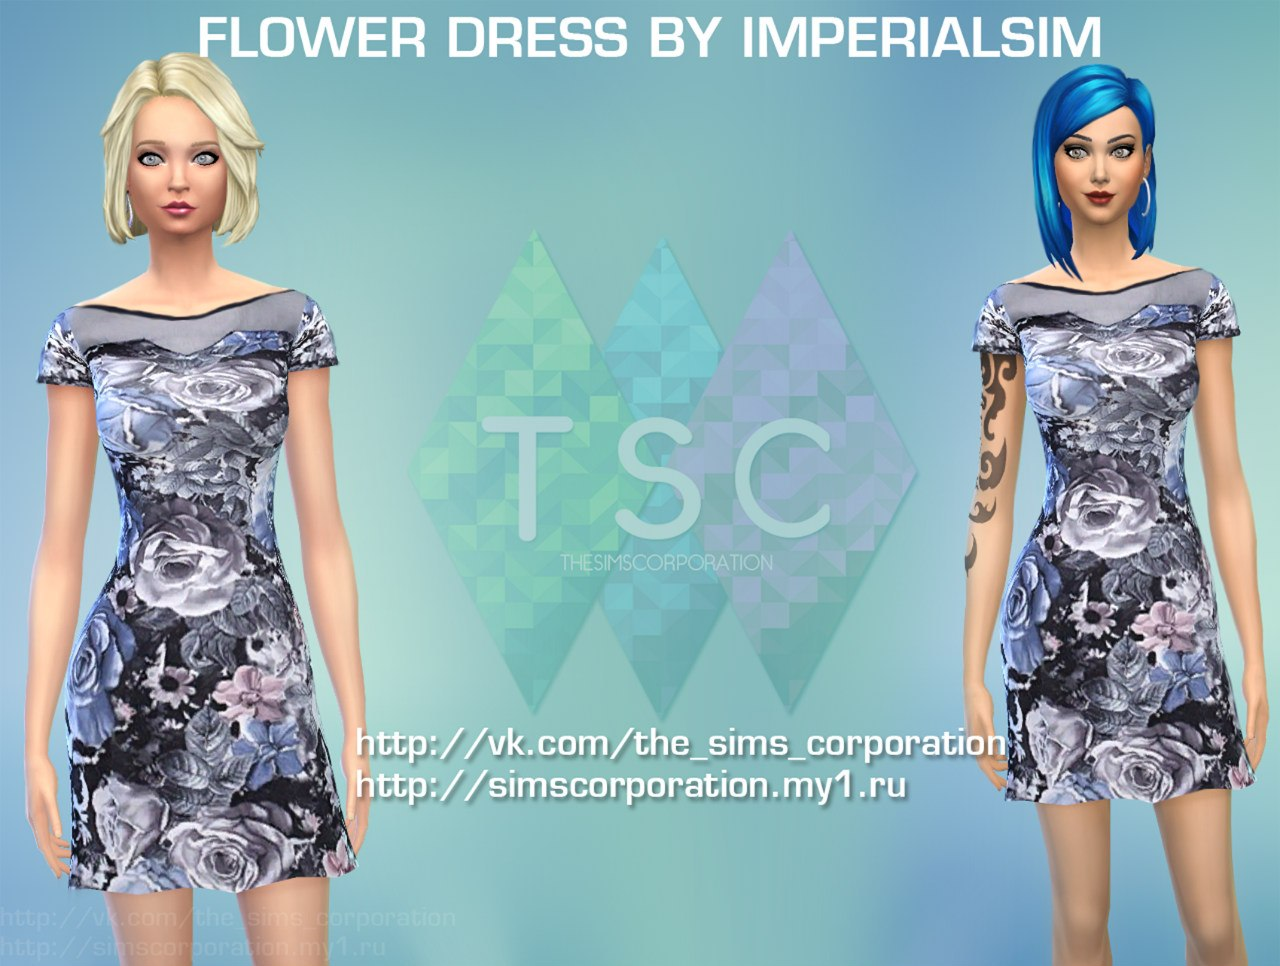 FLOWER DRESS BY IMPERIALSIM